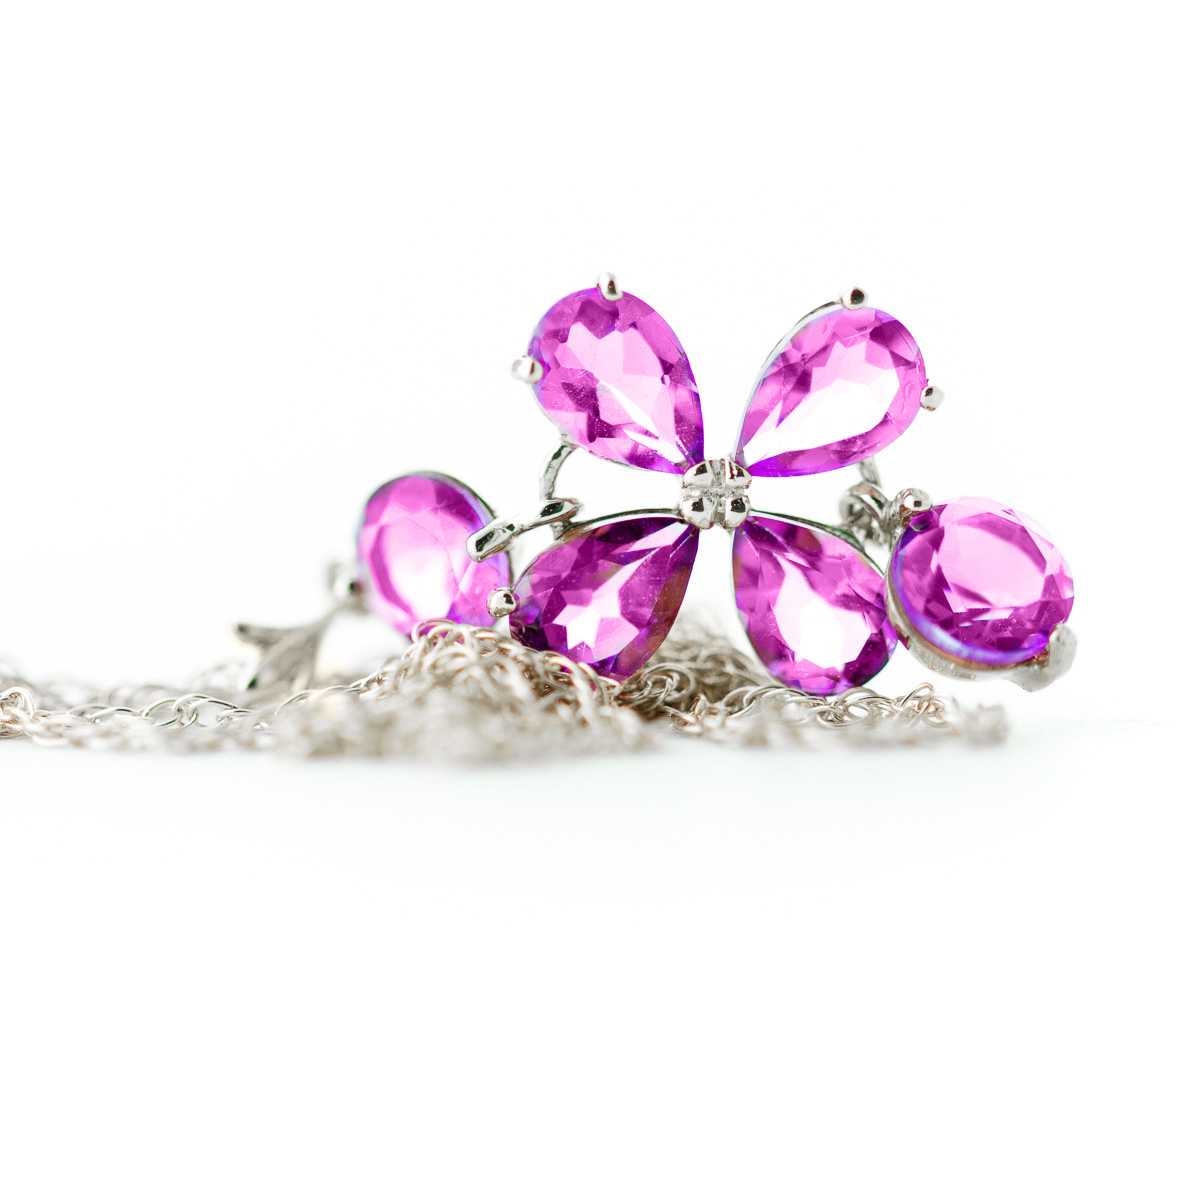 Pink Topaz Blossom Pendant Necklace 3.15ctw in 9ct White Gold